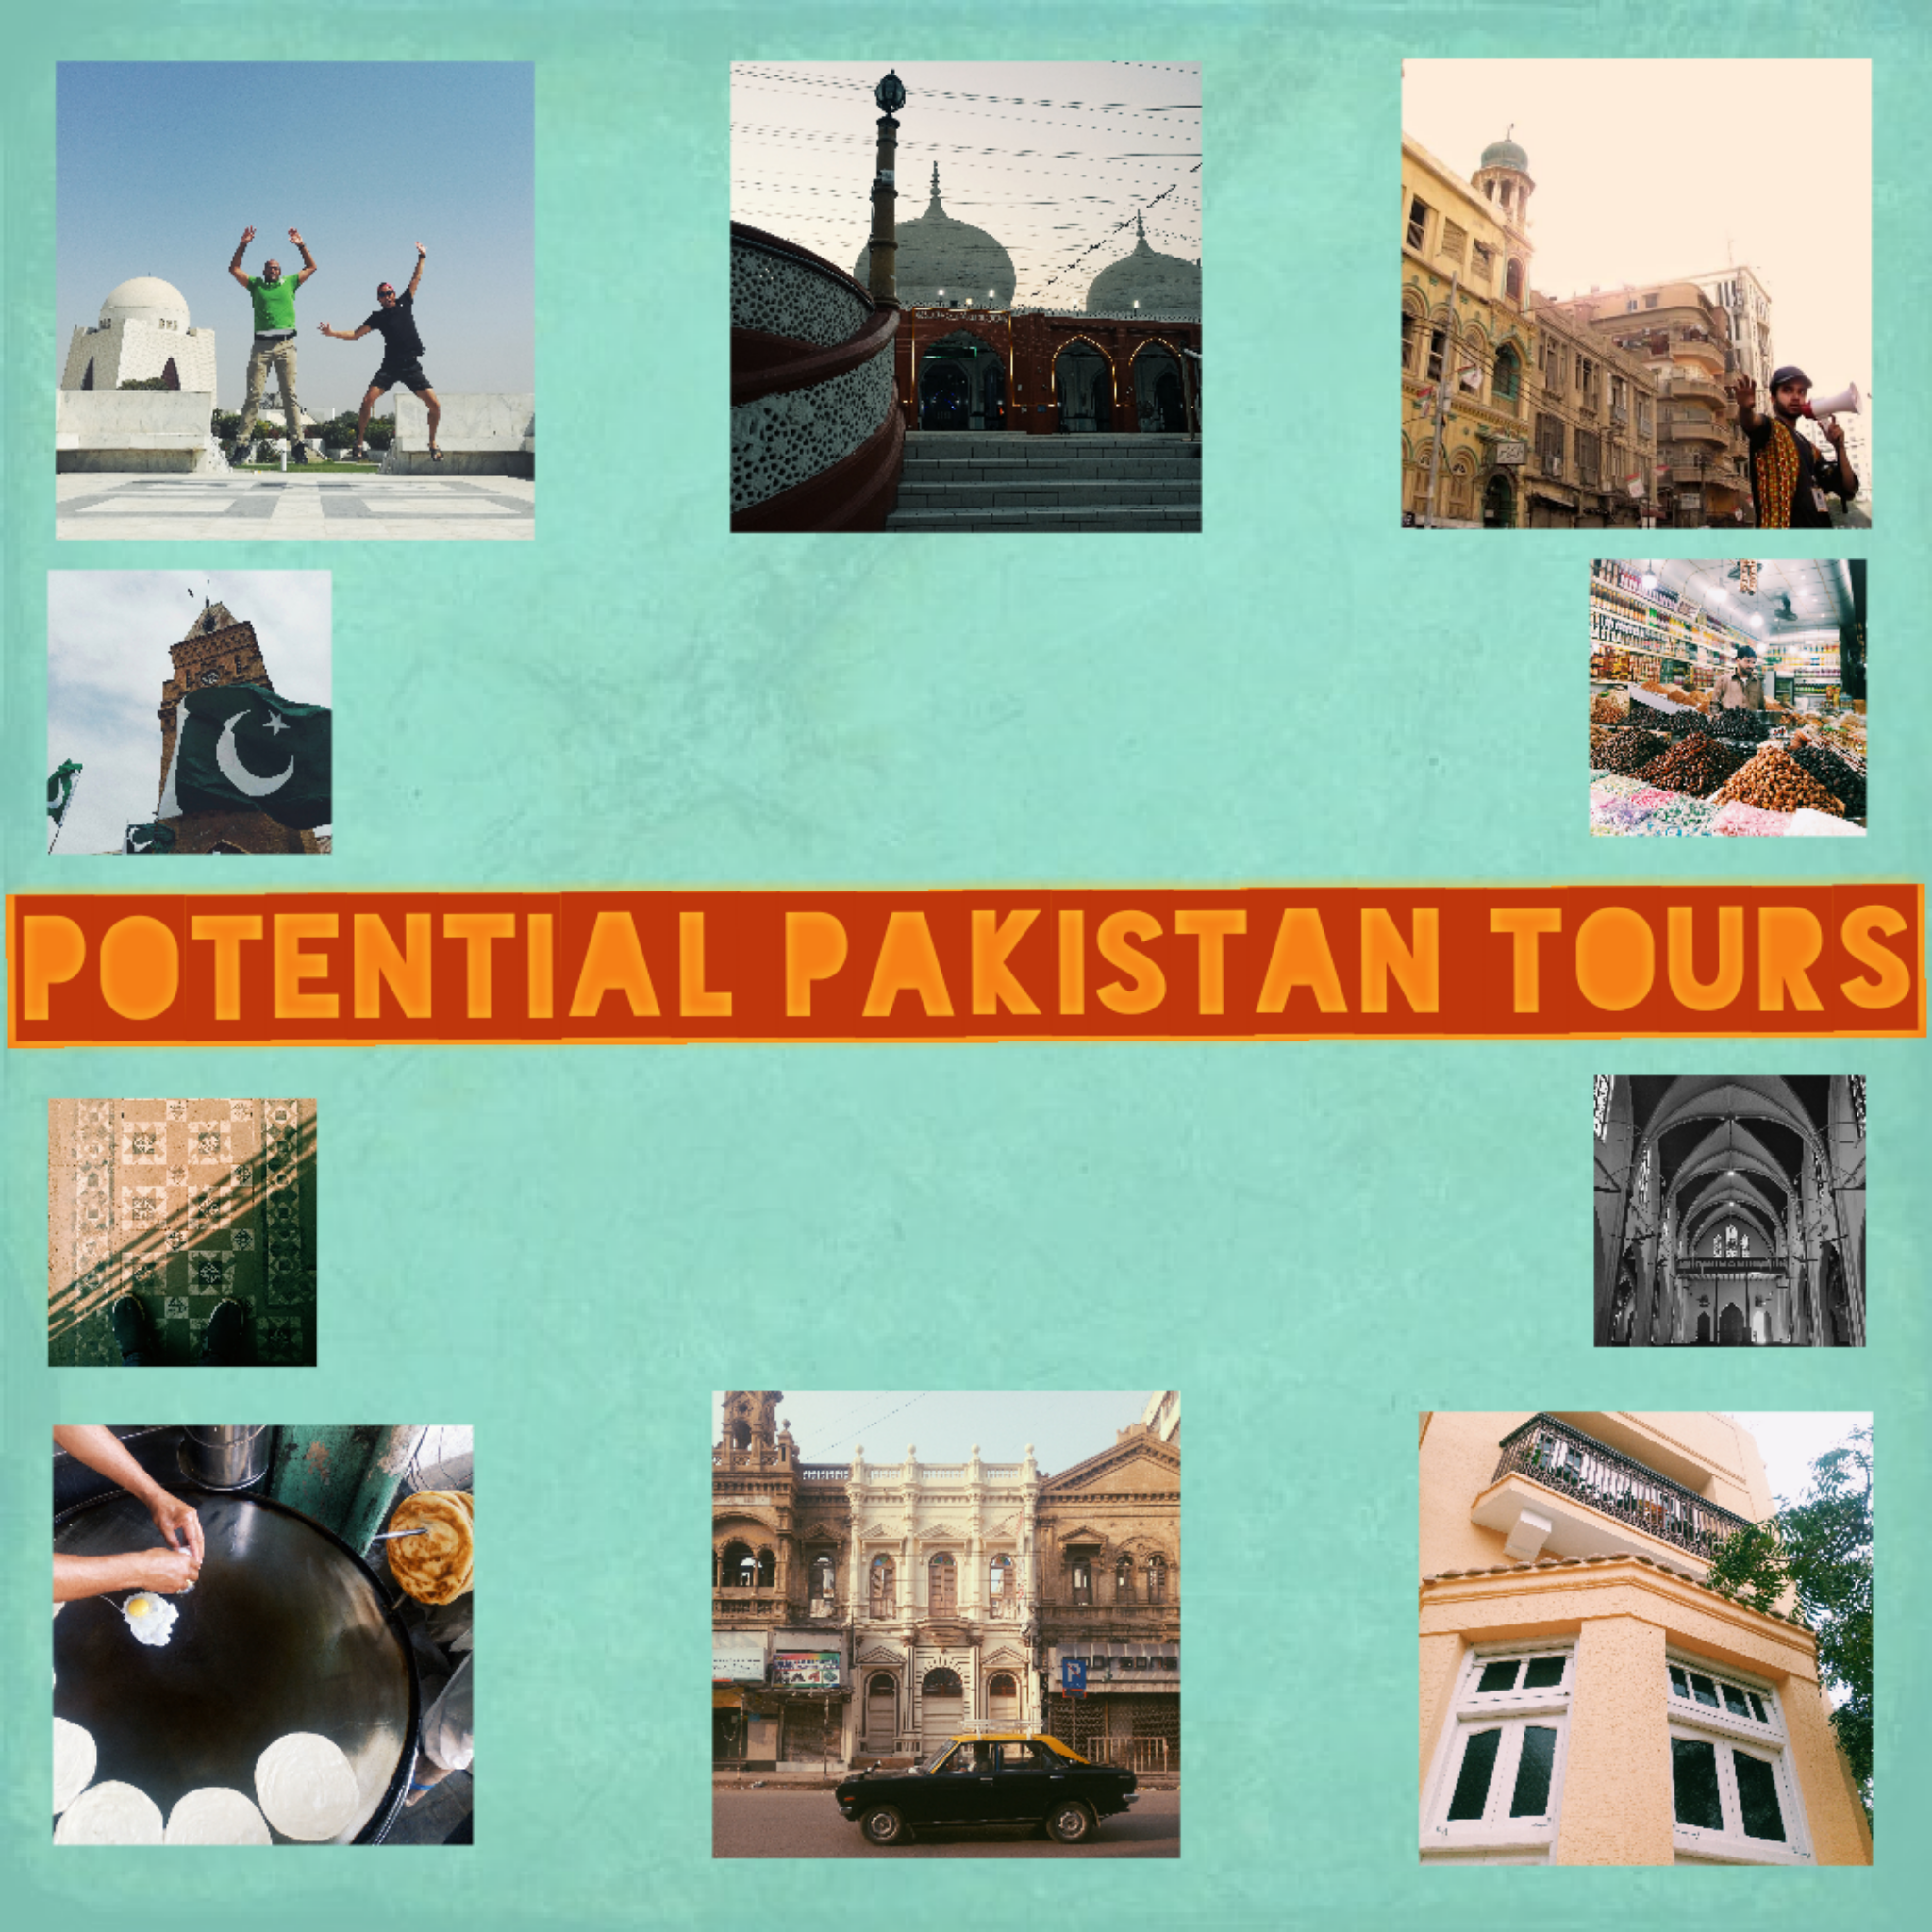 Our official karachi tourism Partner  - Instagram - @PotentialPakistanFacebook - Potential Pakistan